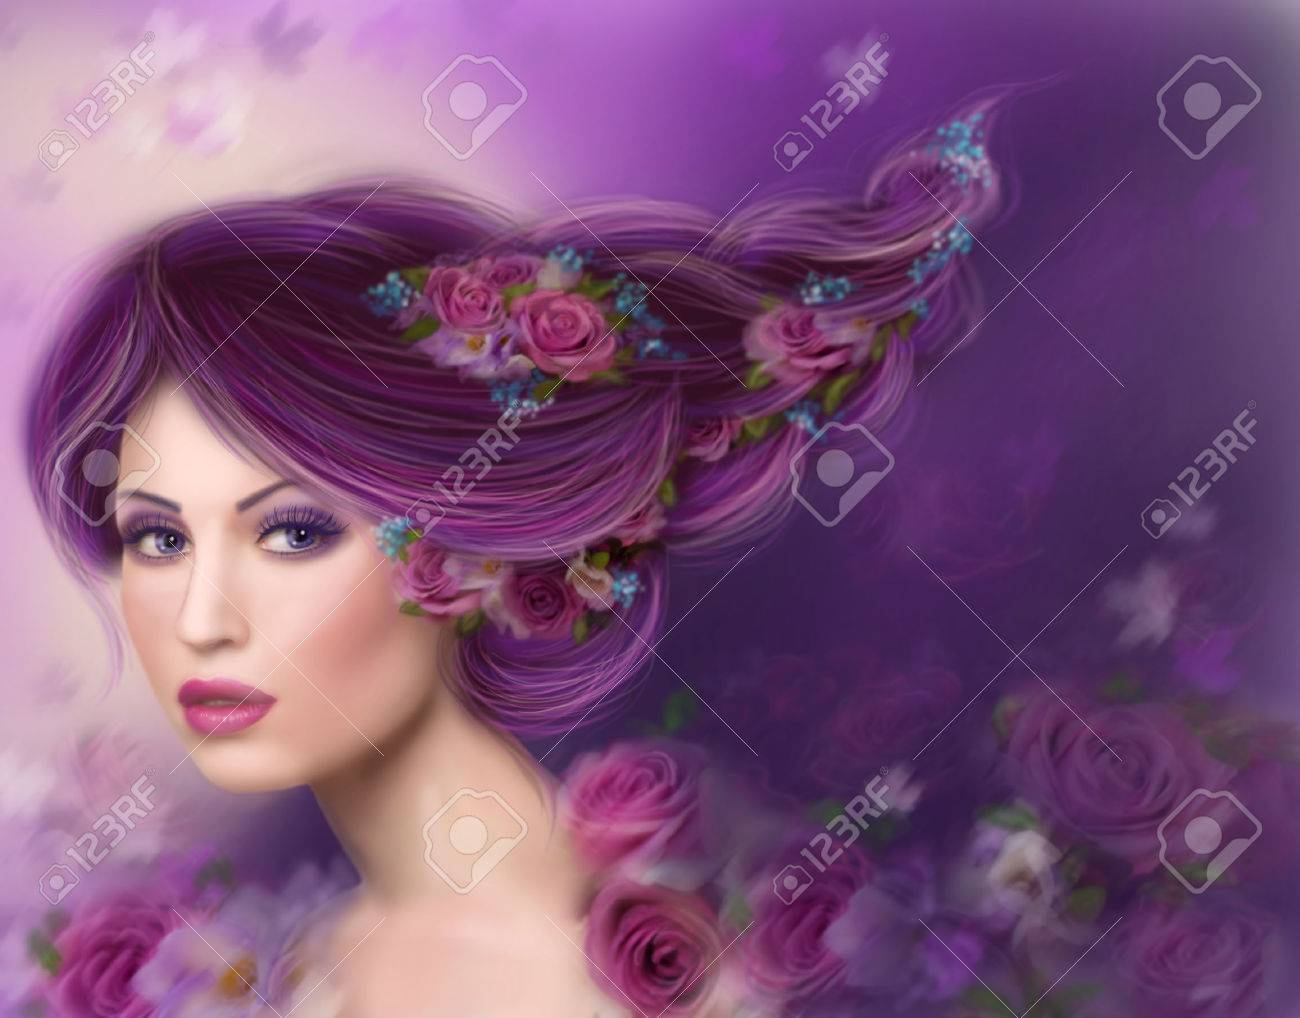 fantasy woman with beautiful purple hair and flowers roses stock